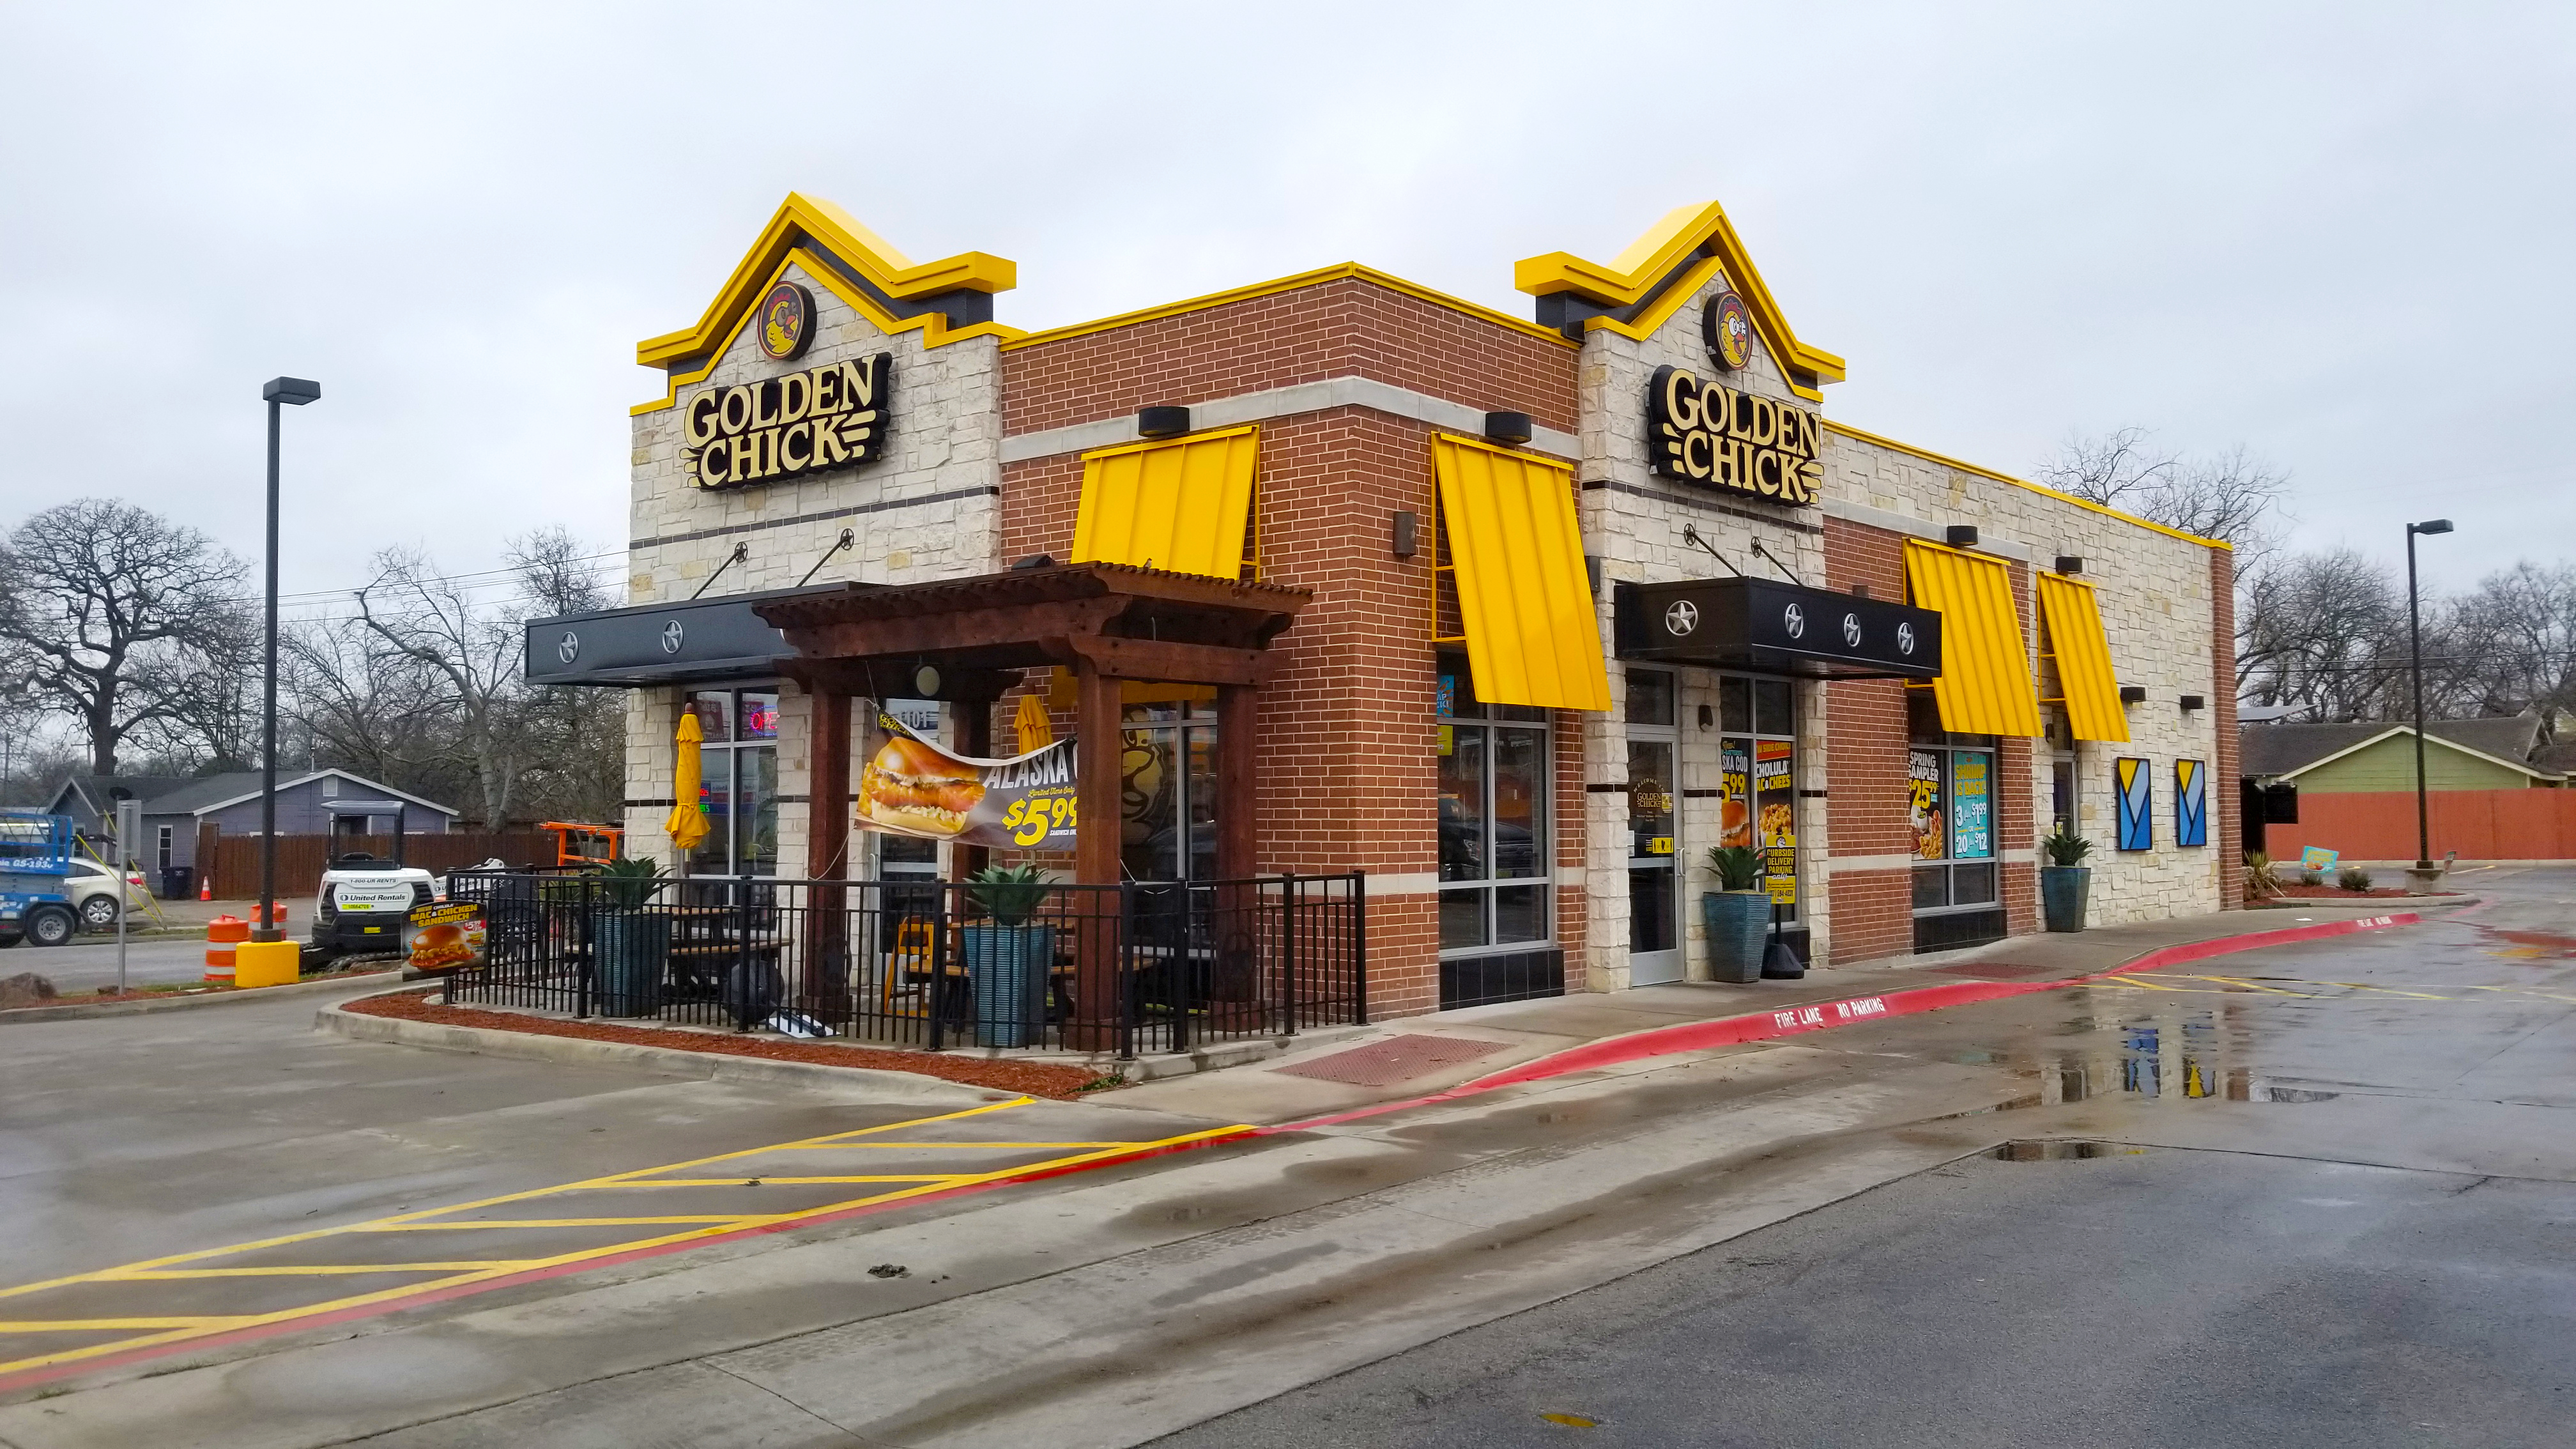 Golden Chick storefront.  Your local Golden Chick fast food restaurant in Weatherford, Texas